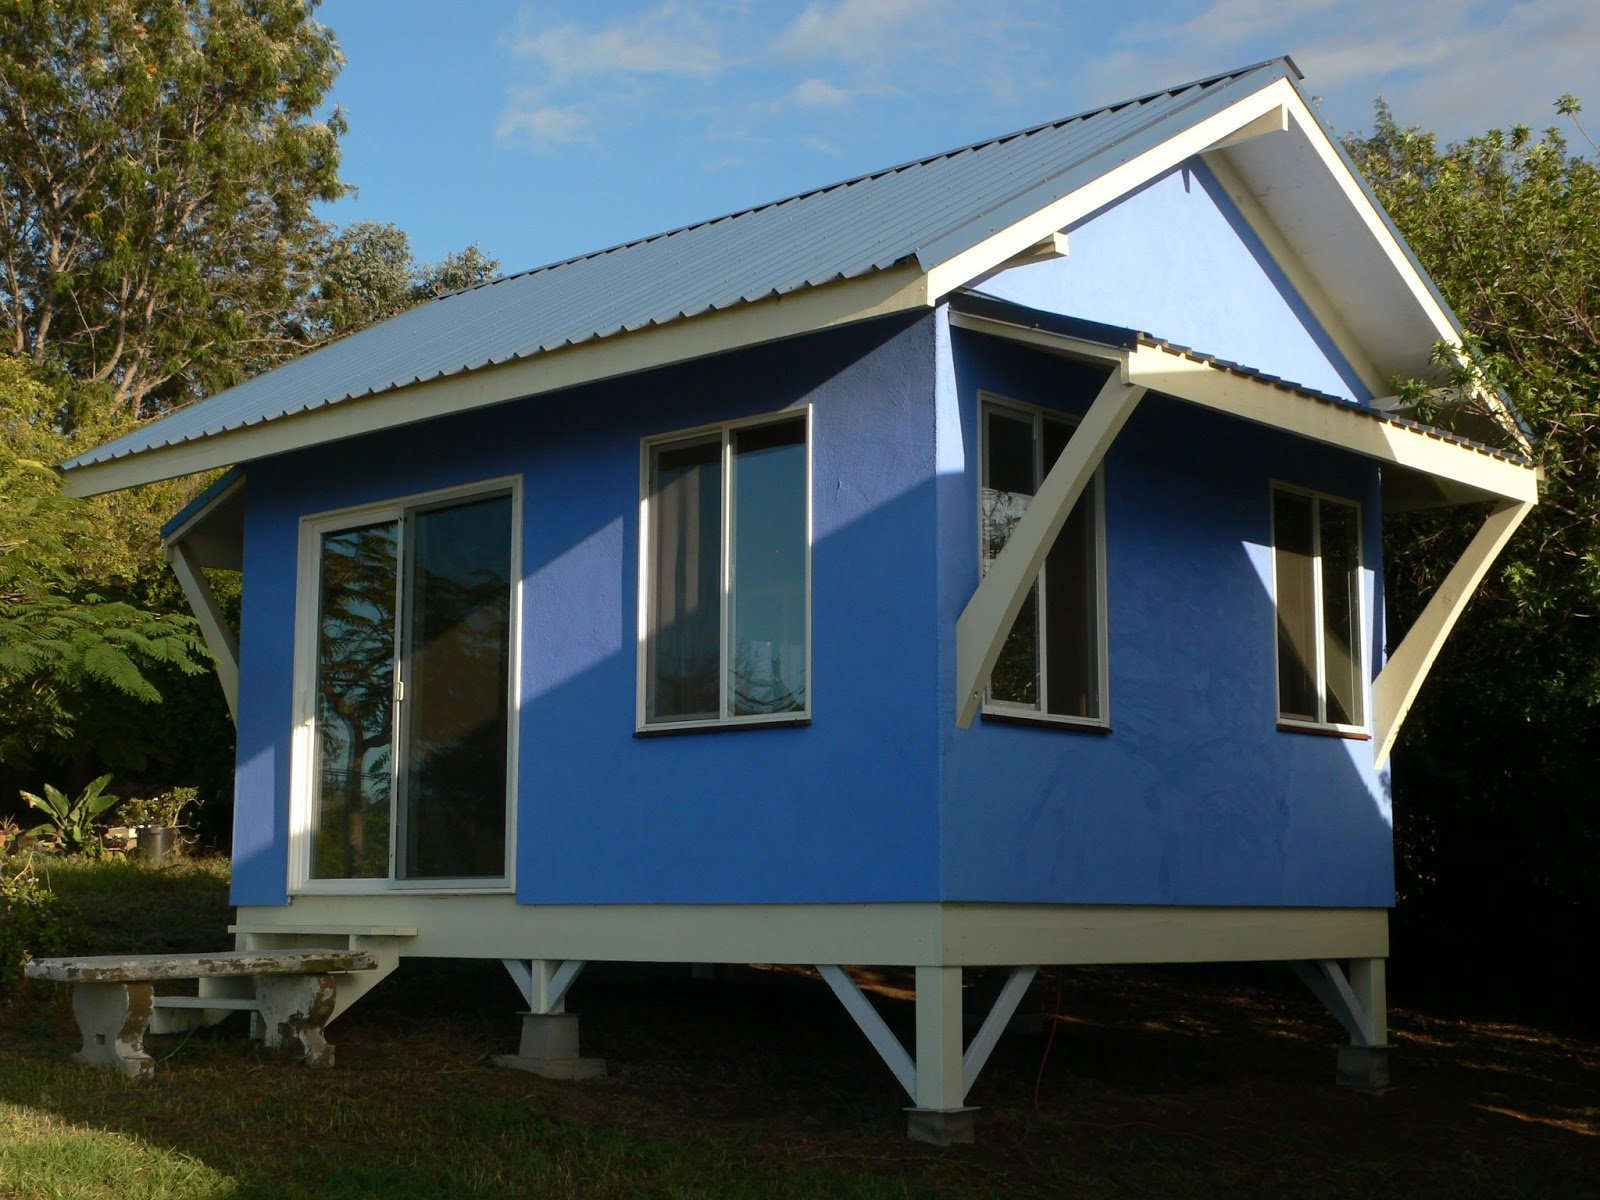 50 photos of small but beautiful and low cost houses that for Tiny house plans cost to build